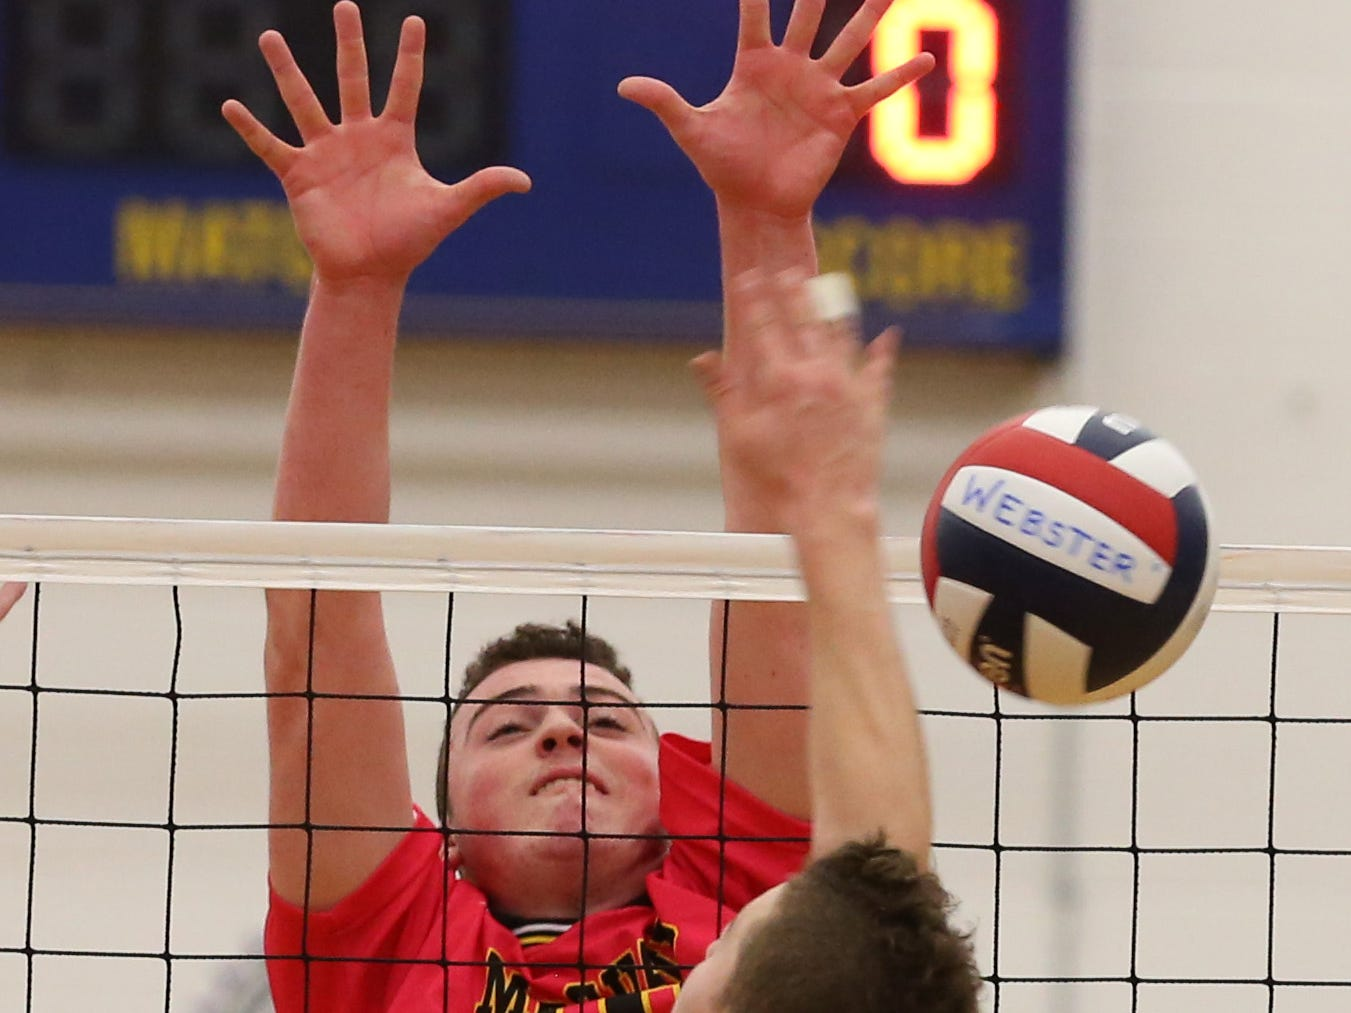 McQuaid's Erik Johnsson blocks a spike at the net by Penfield's Jordan Solomon during their Class A championship matchup Thursday, Nov. 12, 2015 at Webster Schroeder.